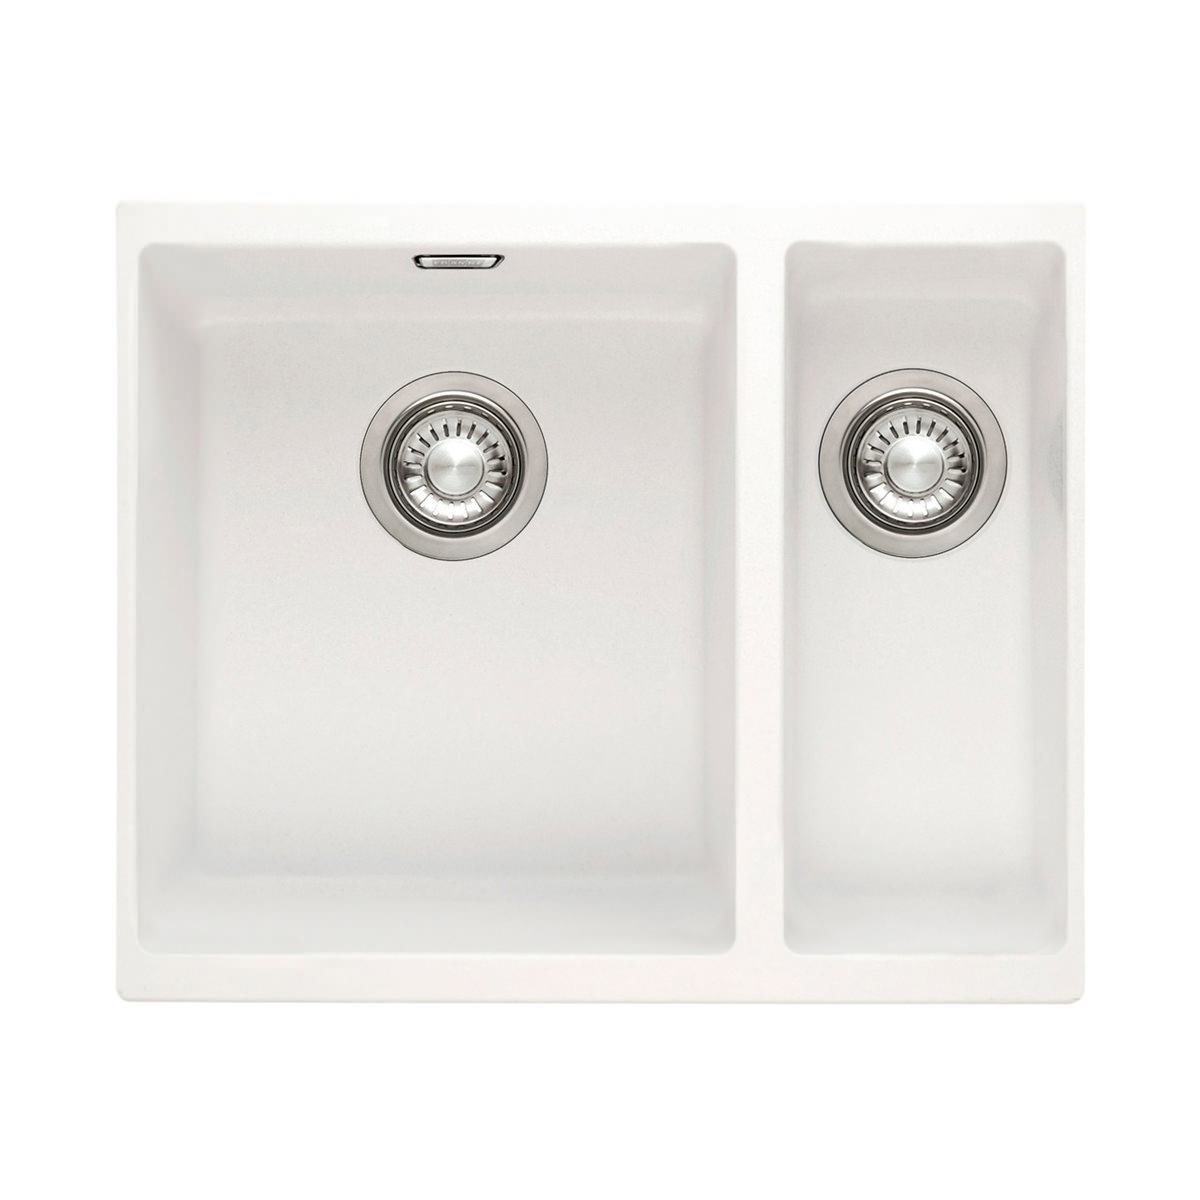 Franke Sirius SID 160 White Tectonite 1.5 Bowl Kitchen Undermount Sink ...